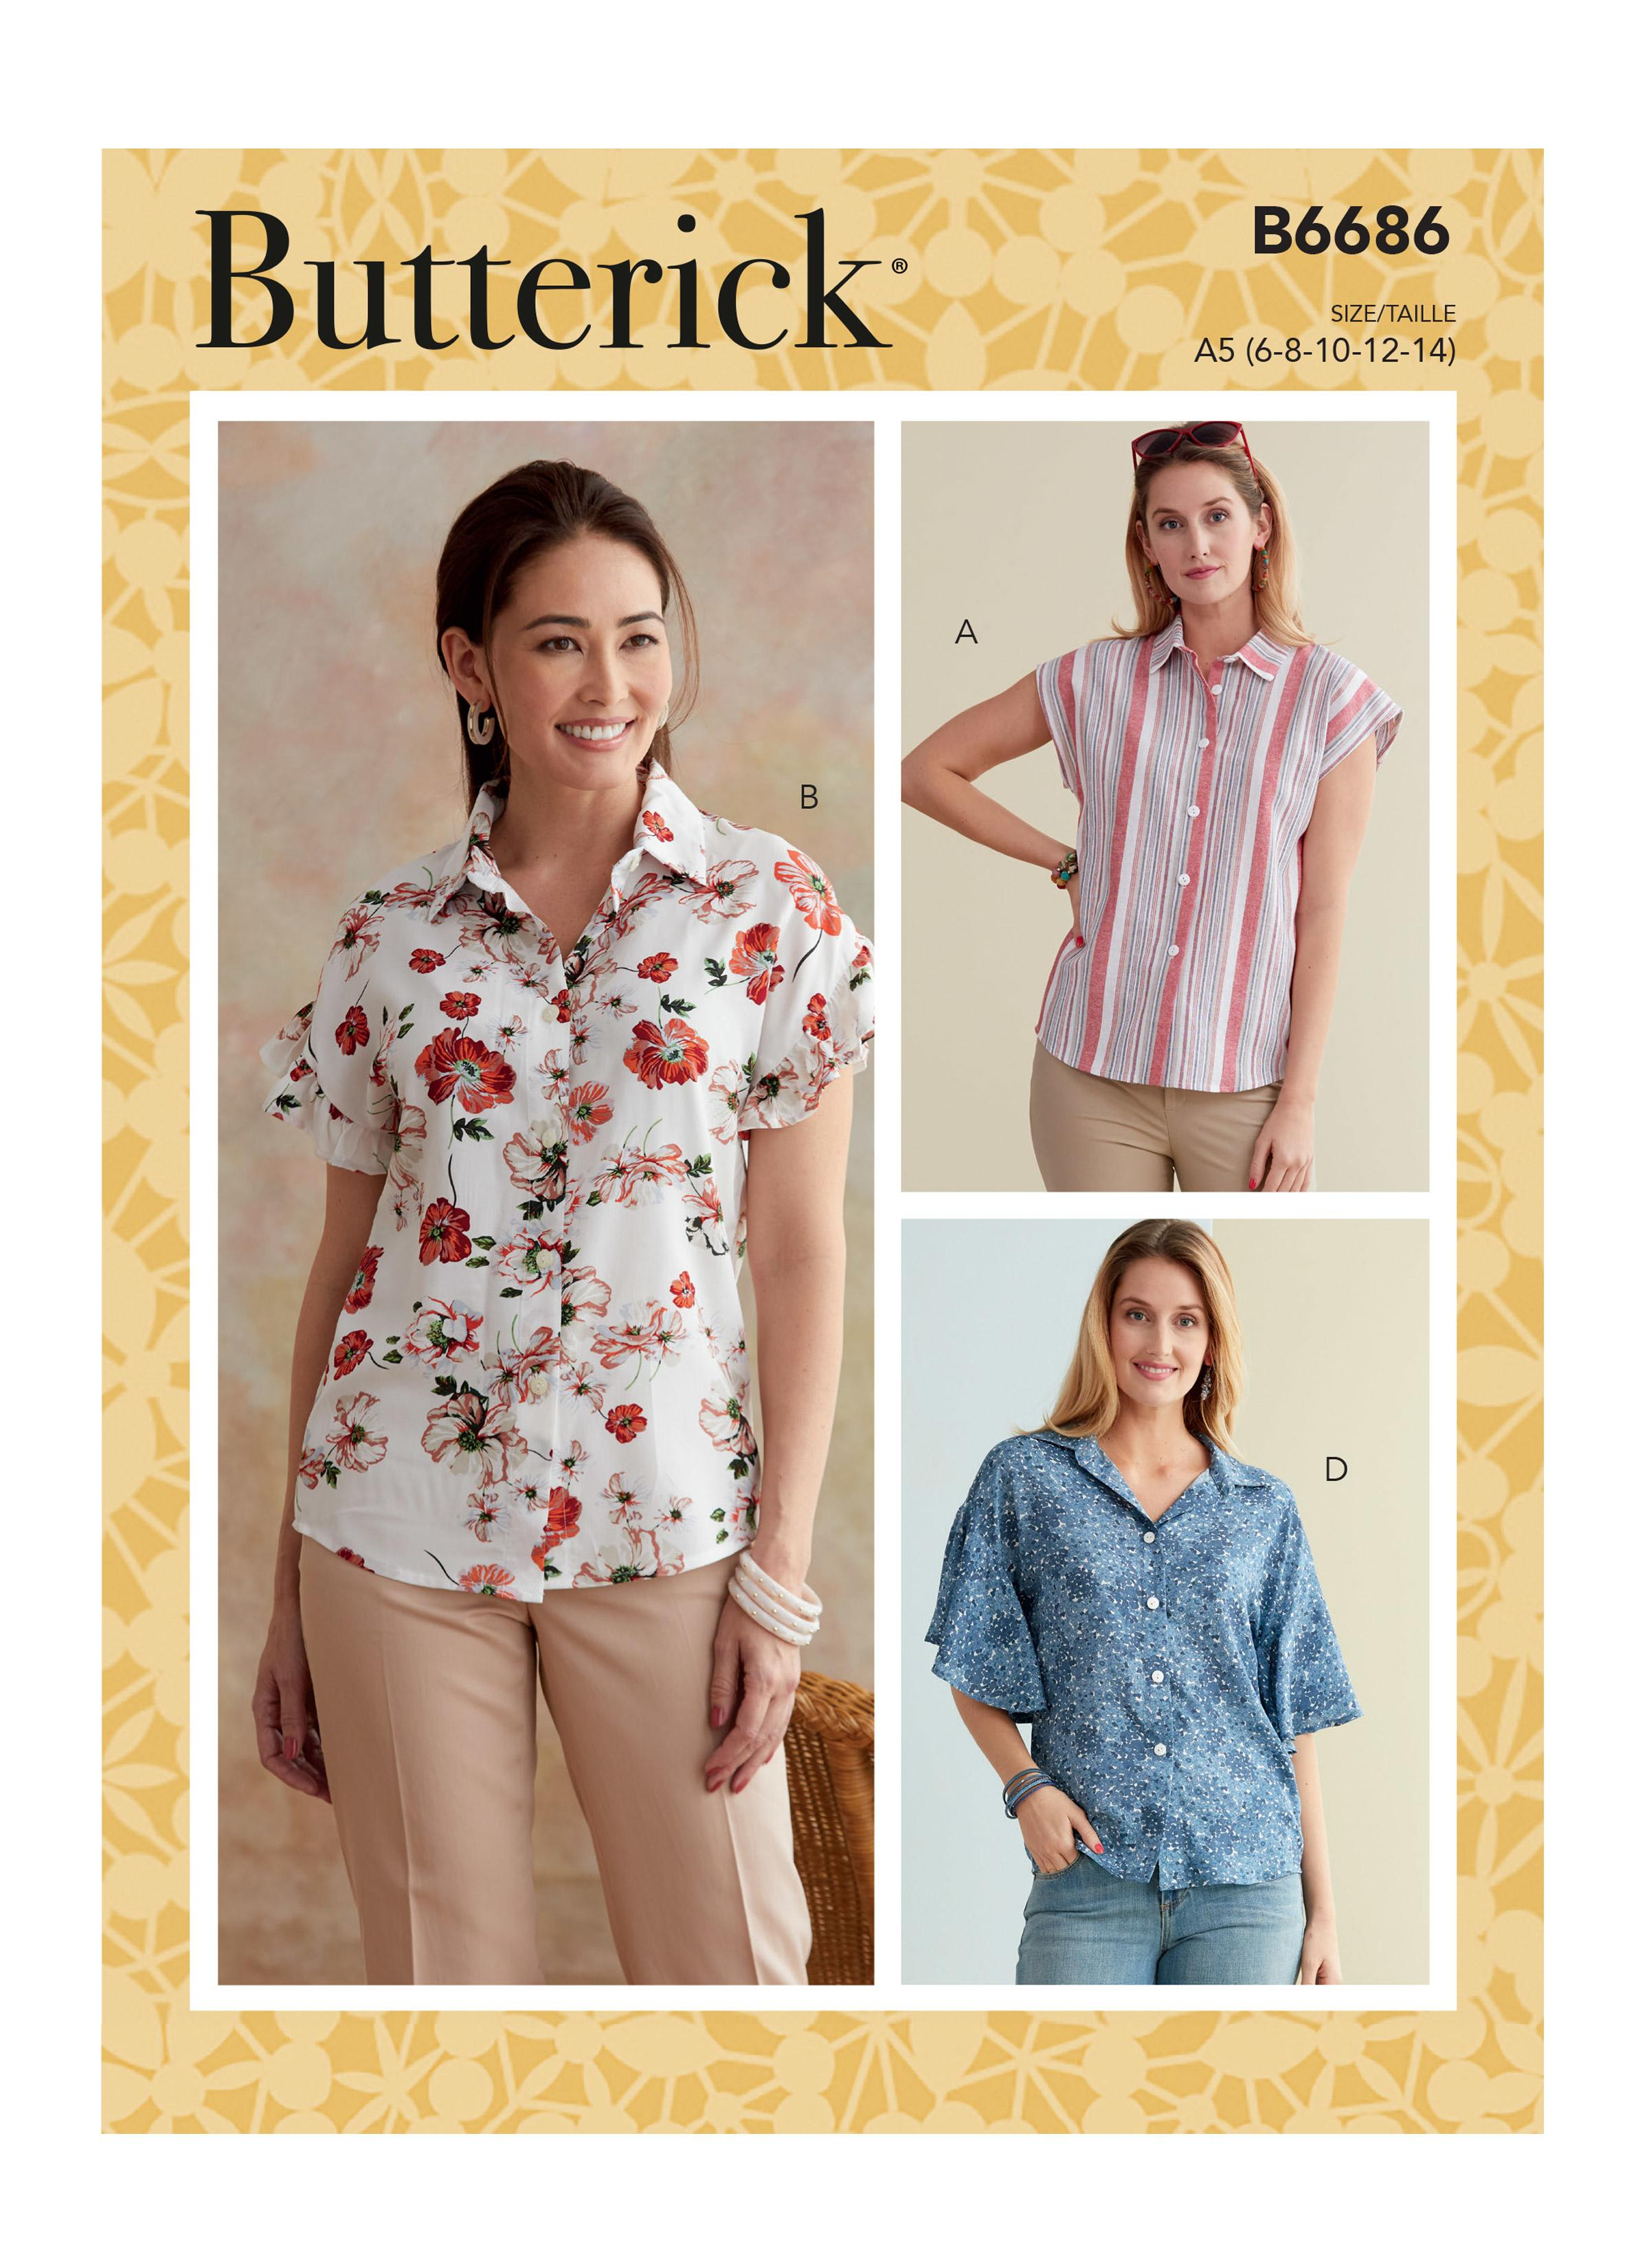 Butterick B6686 Misses' Top